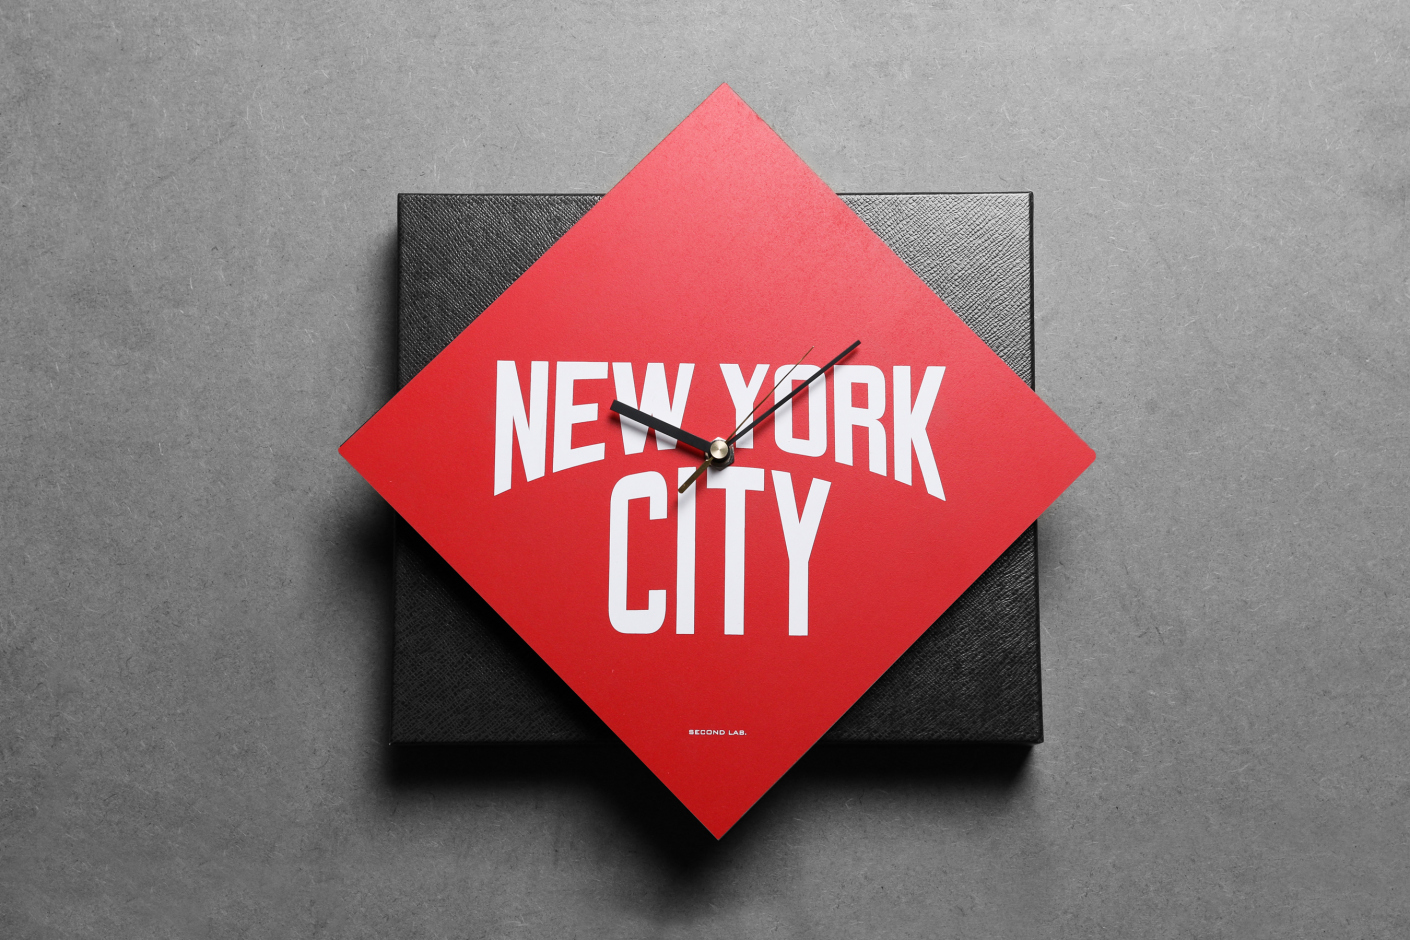 Second lab new york city wall clock collection direkt concept second lab new york city wall clock collection amipublicfo Gallery